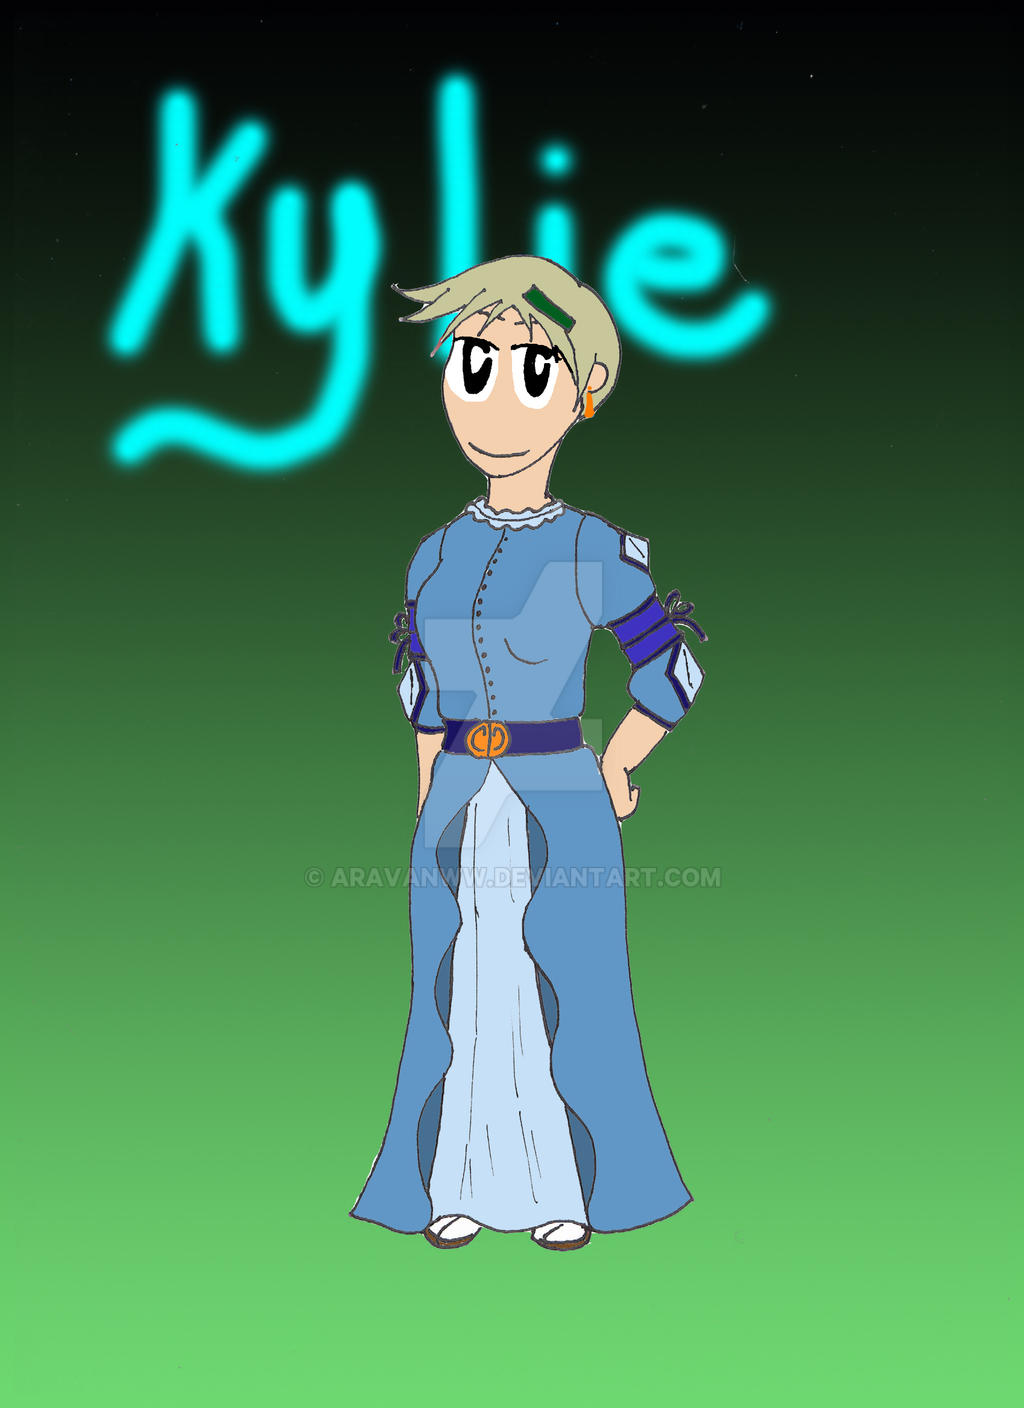 Kylie by Aravanww